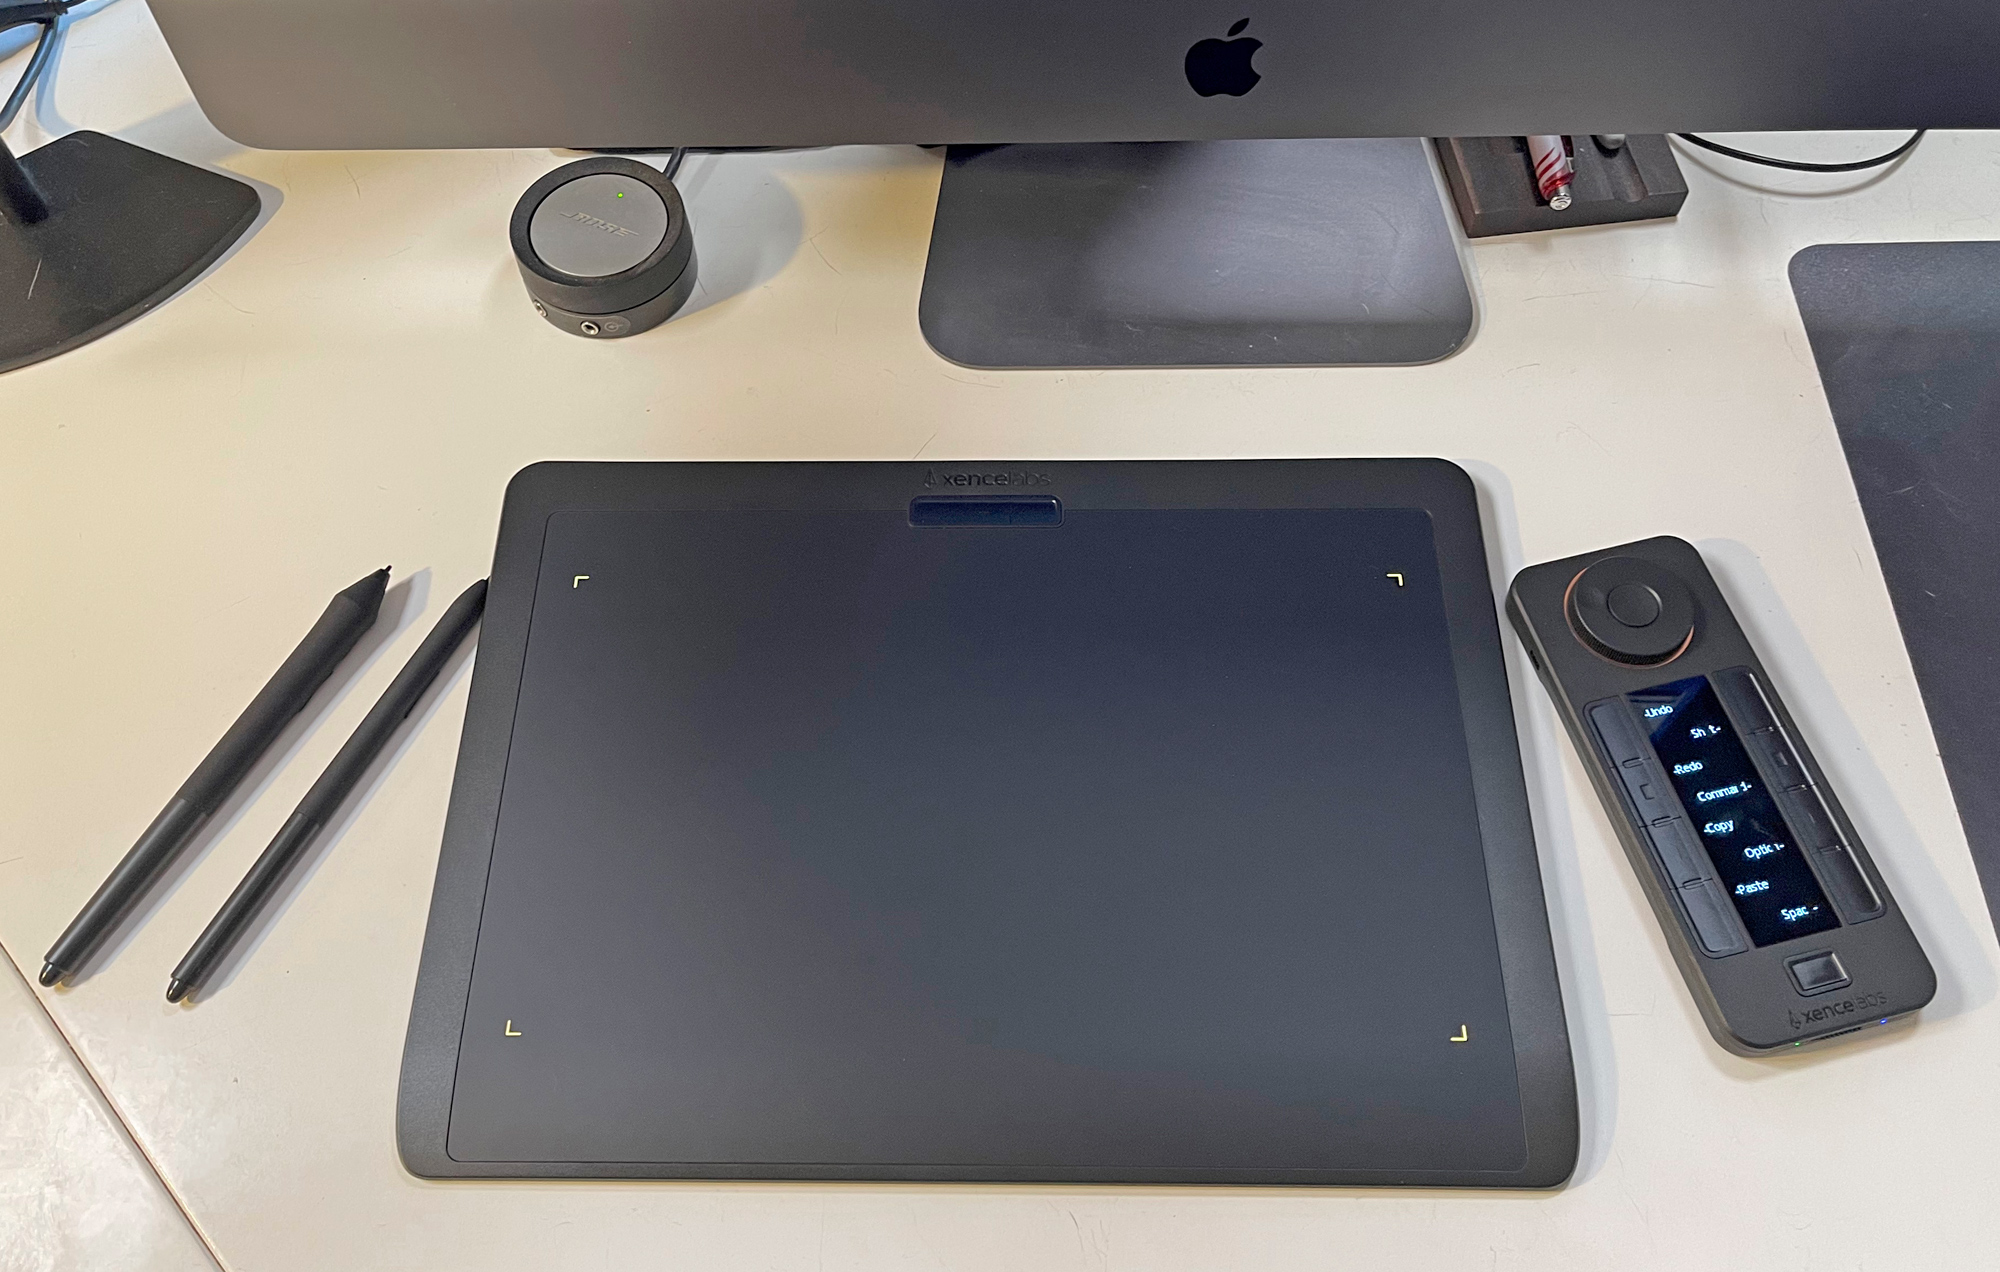 The Xencelab Tablet with two pens and remote